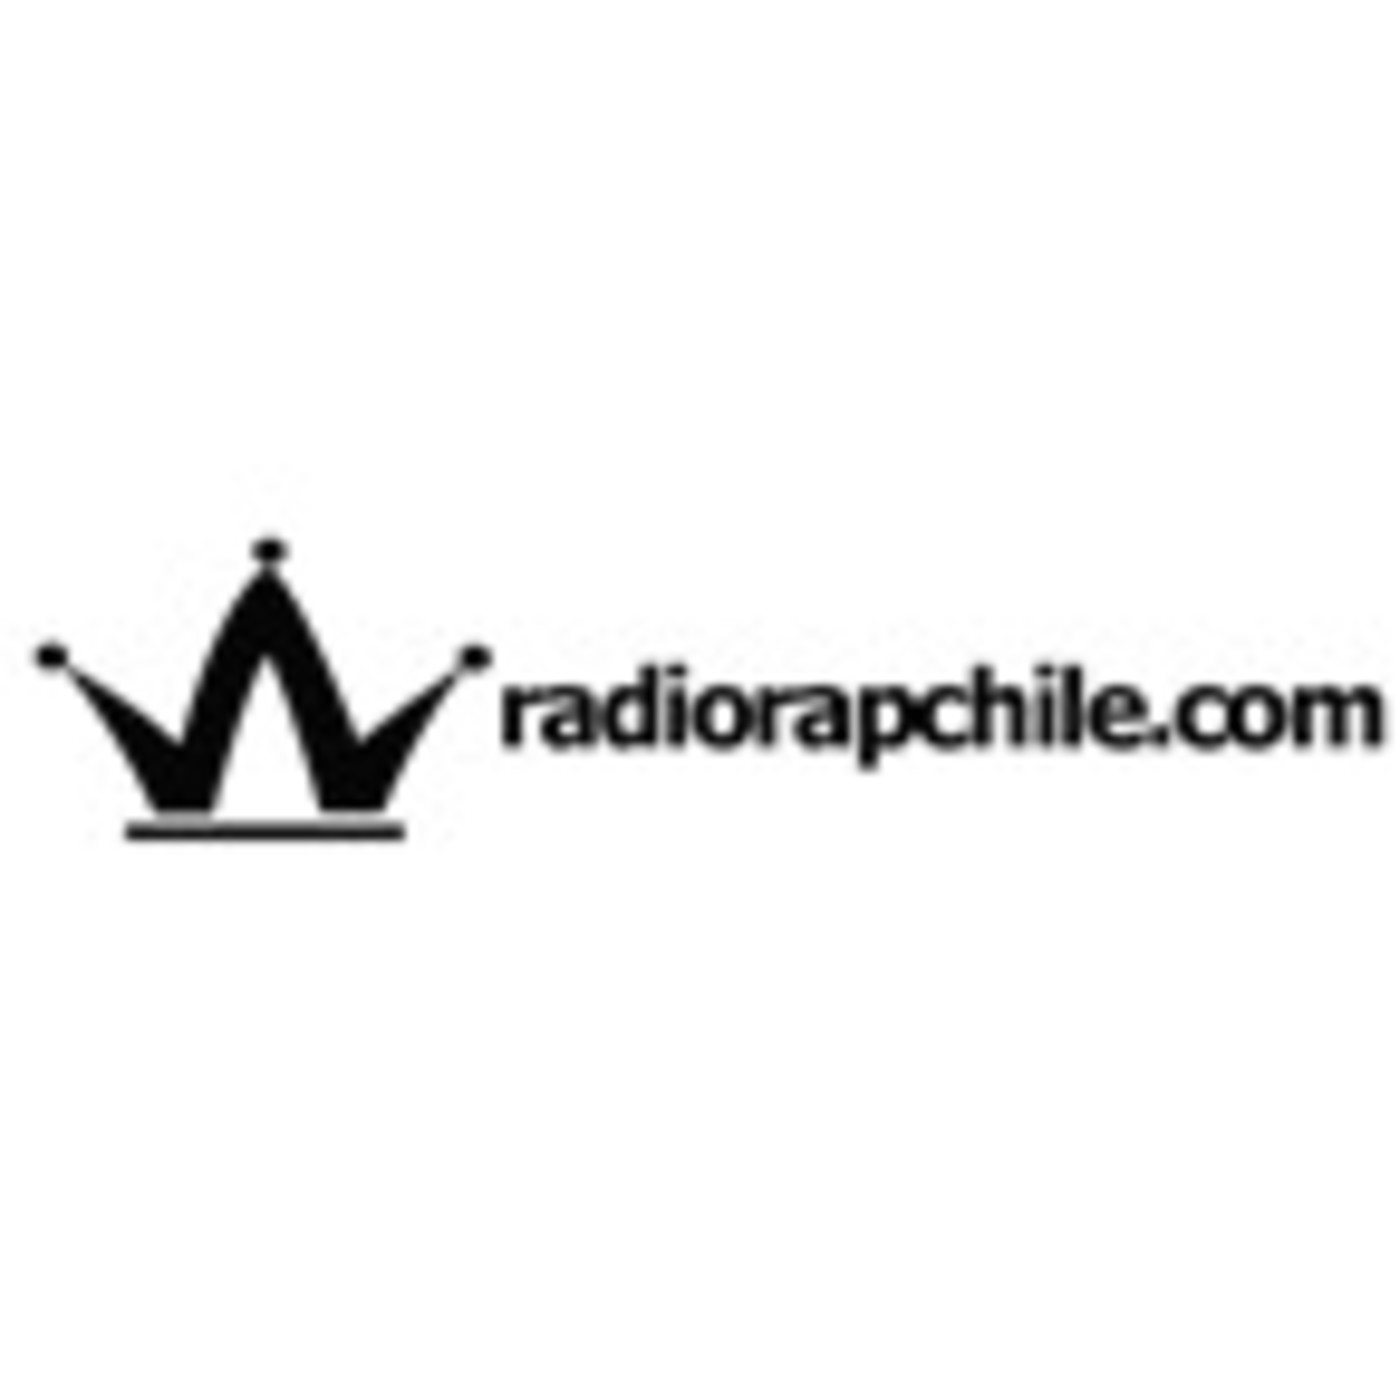 Radio Rap Chile